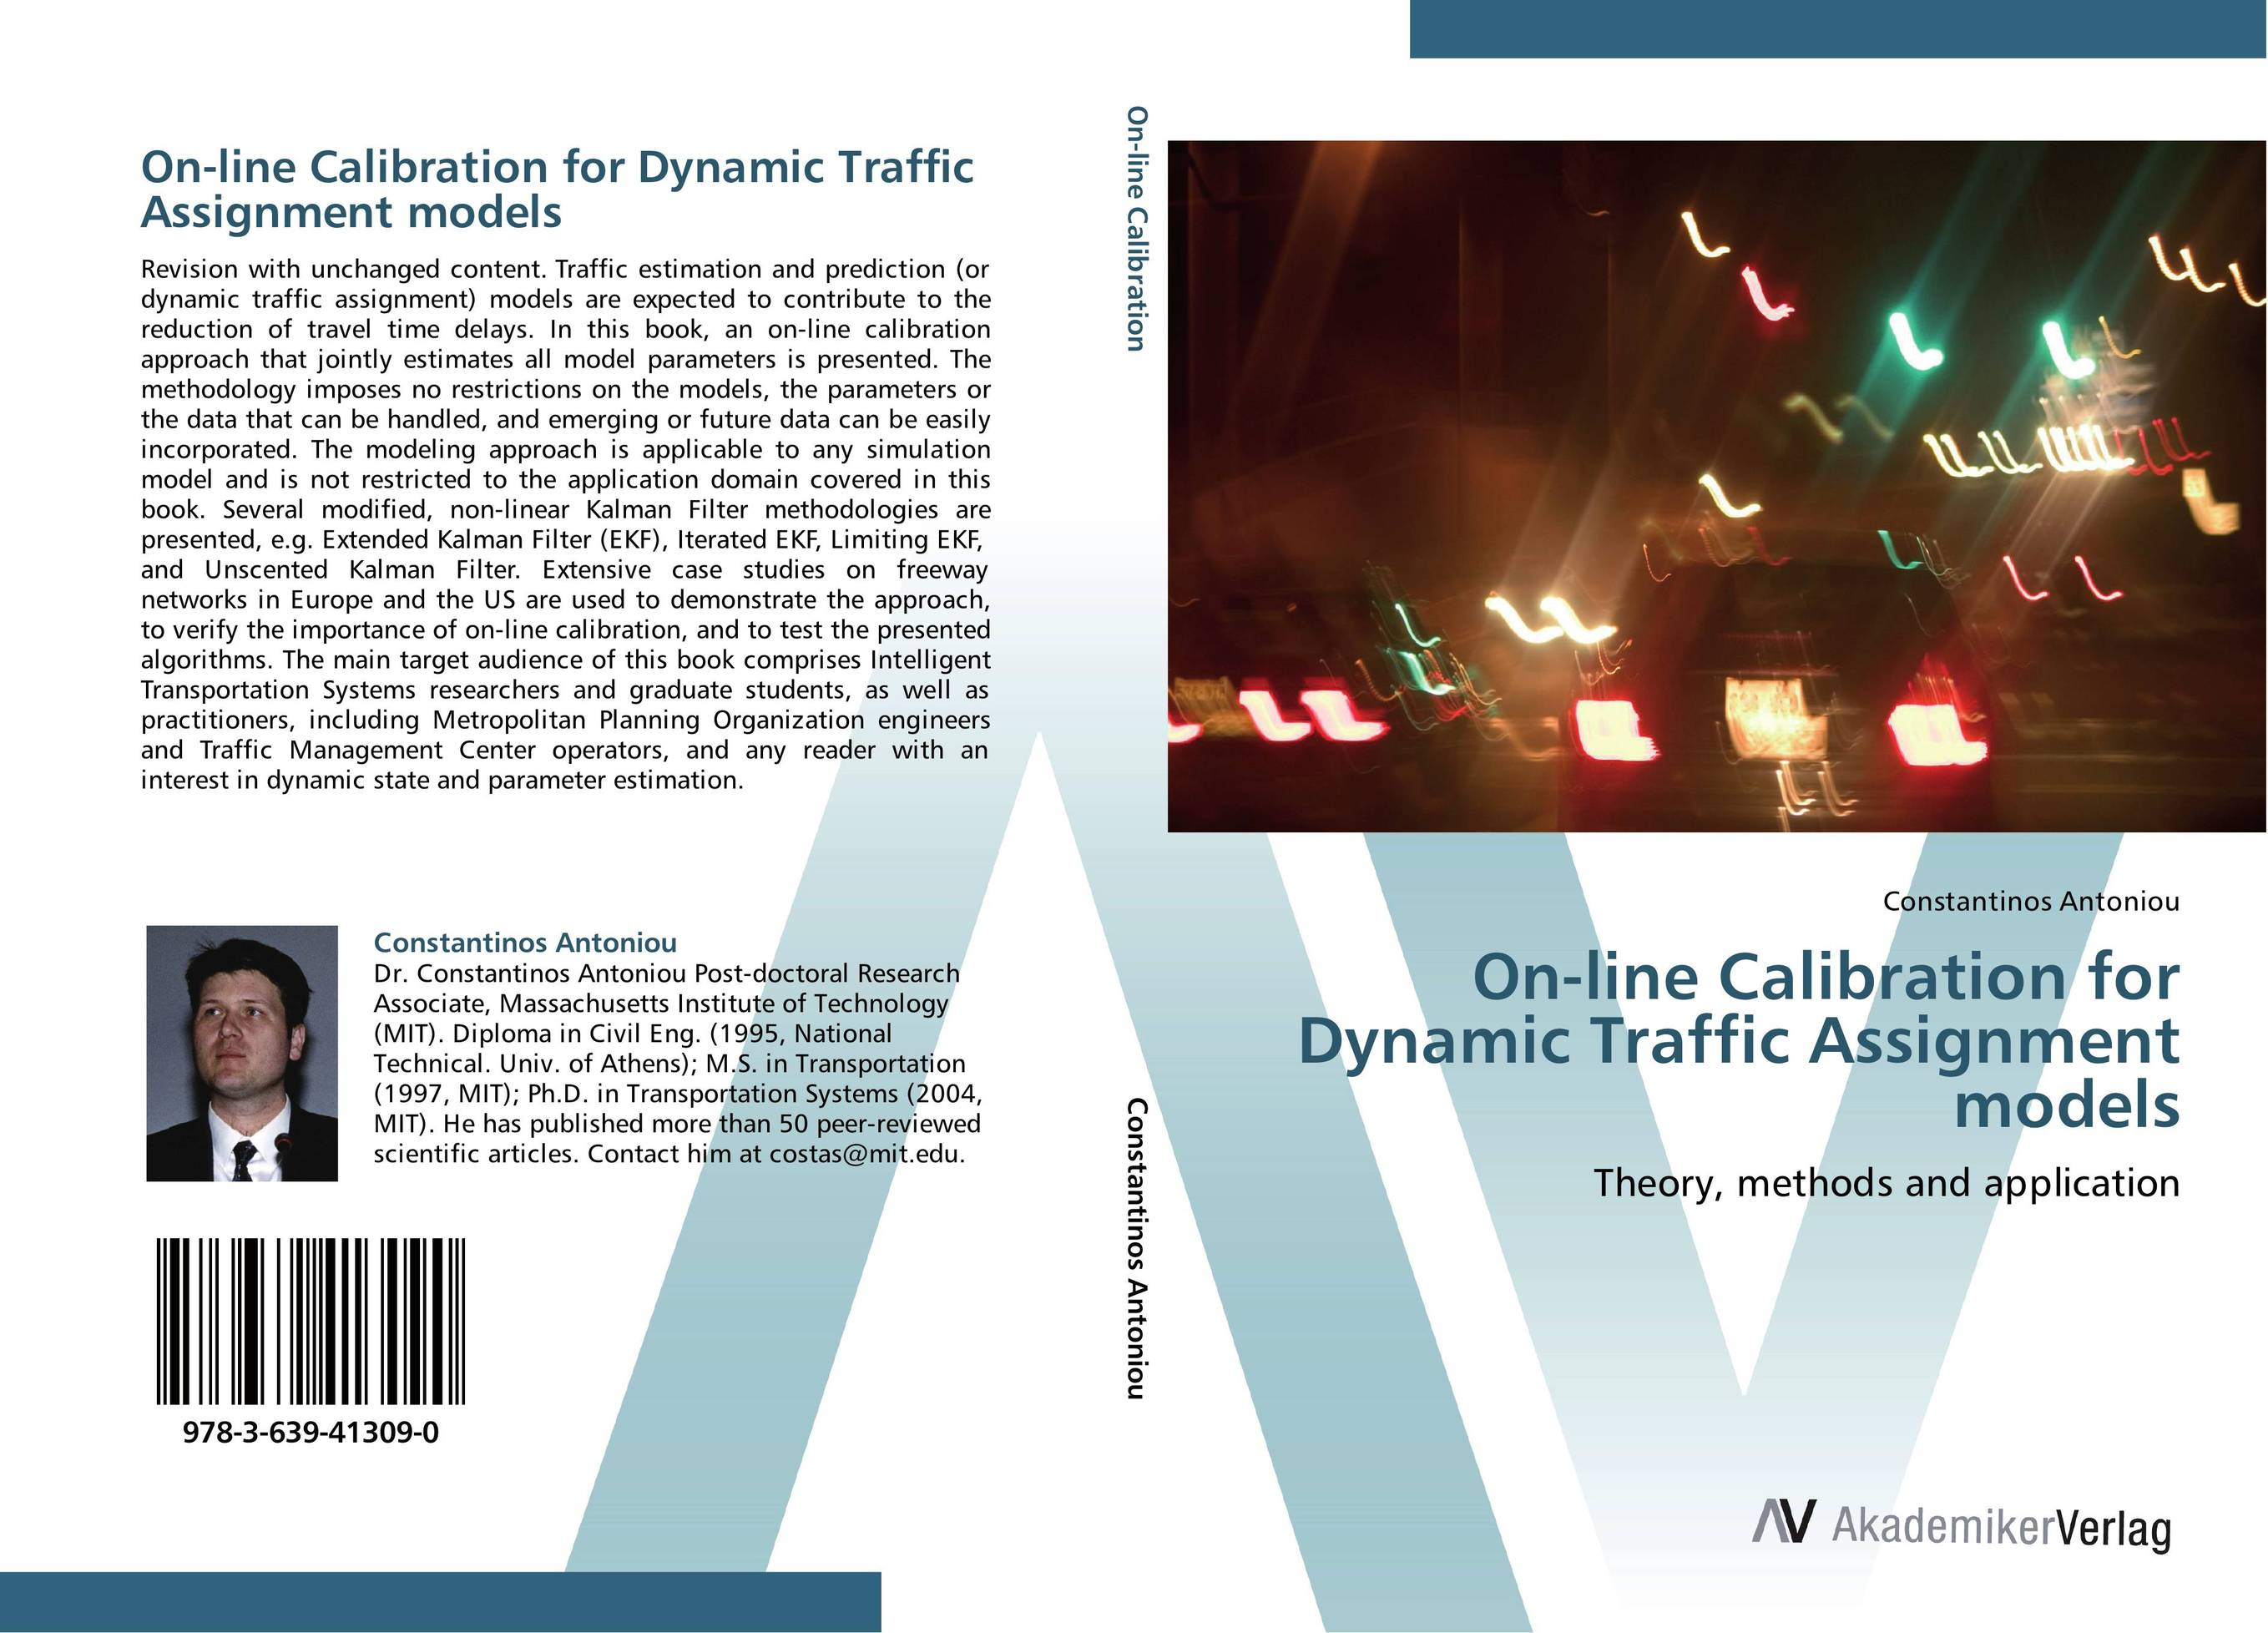 On-line Calibration for Dynamic Traffic Assignment models